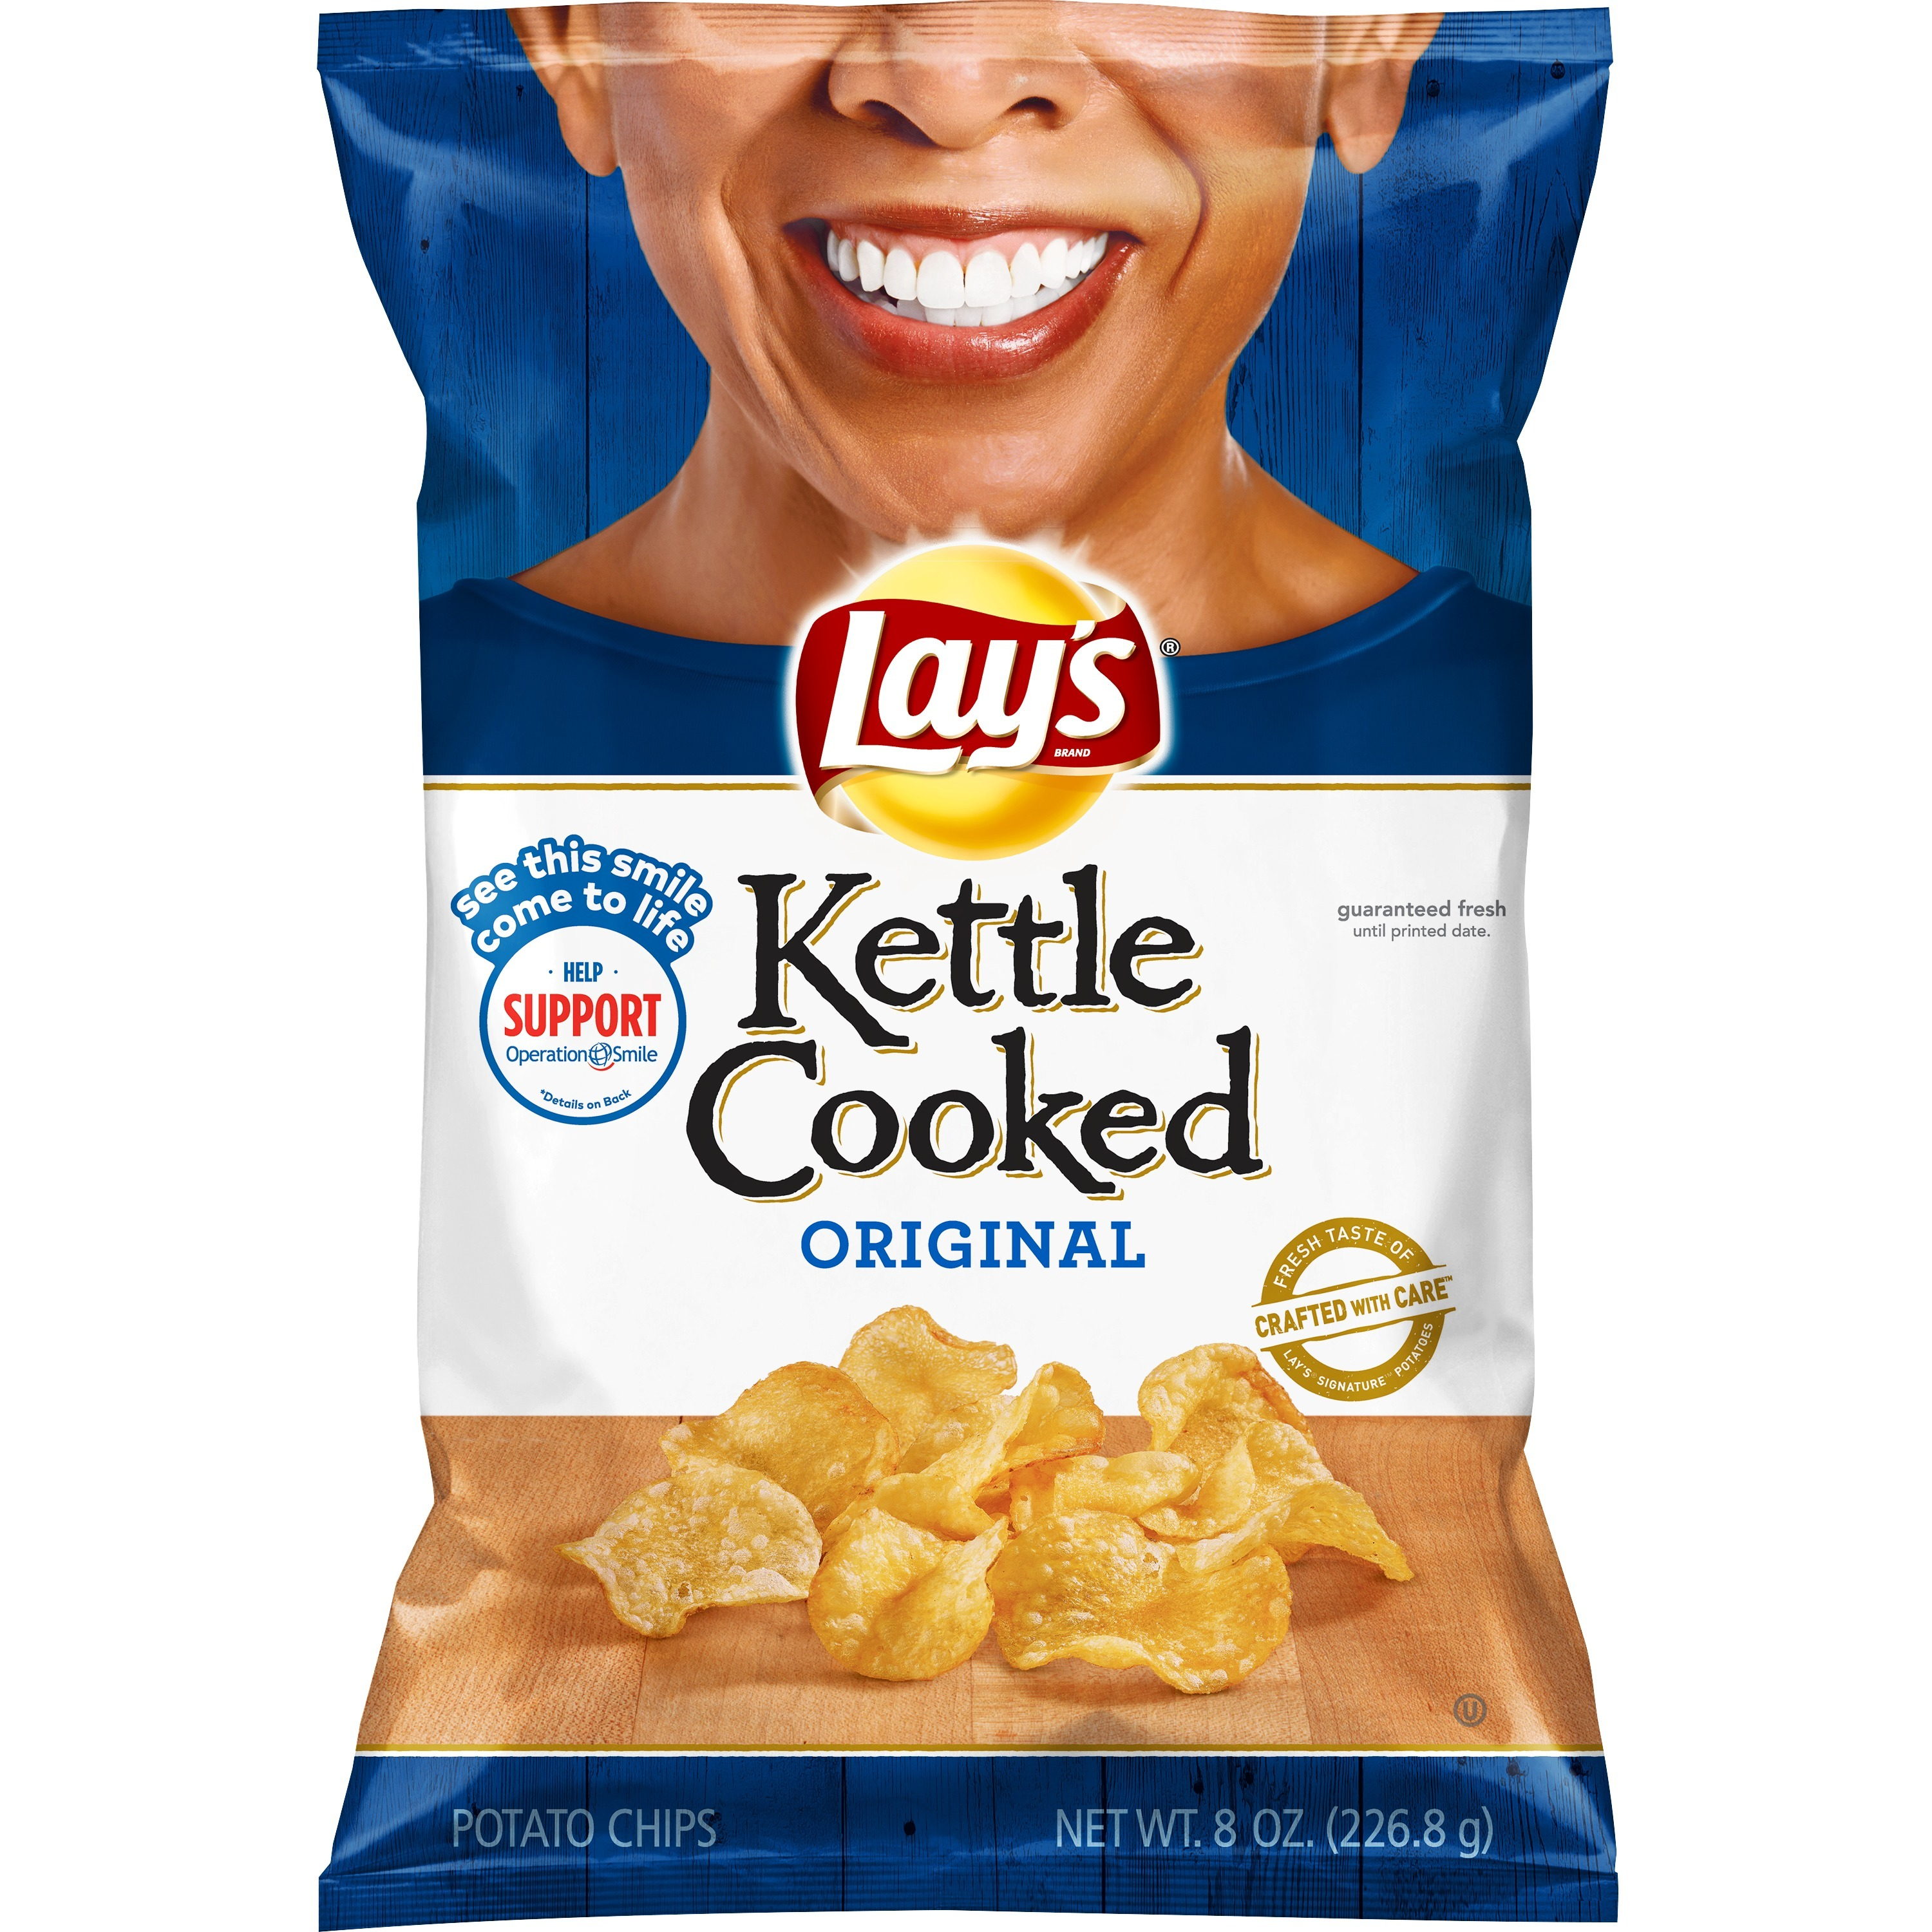 Lay's Kettle Cooked Potato Chips, Original, 8 oz Bag